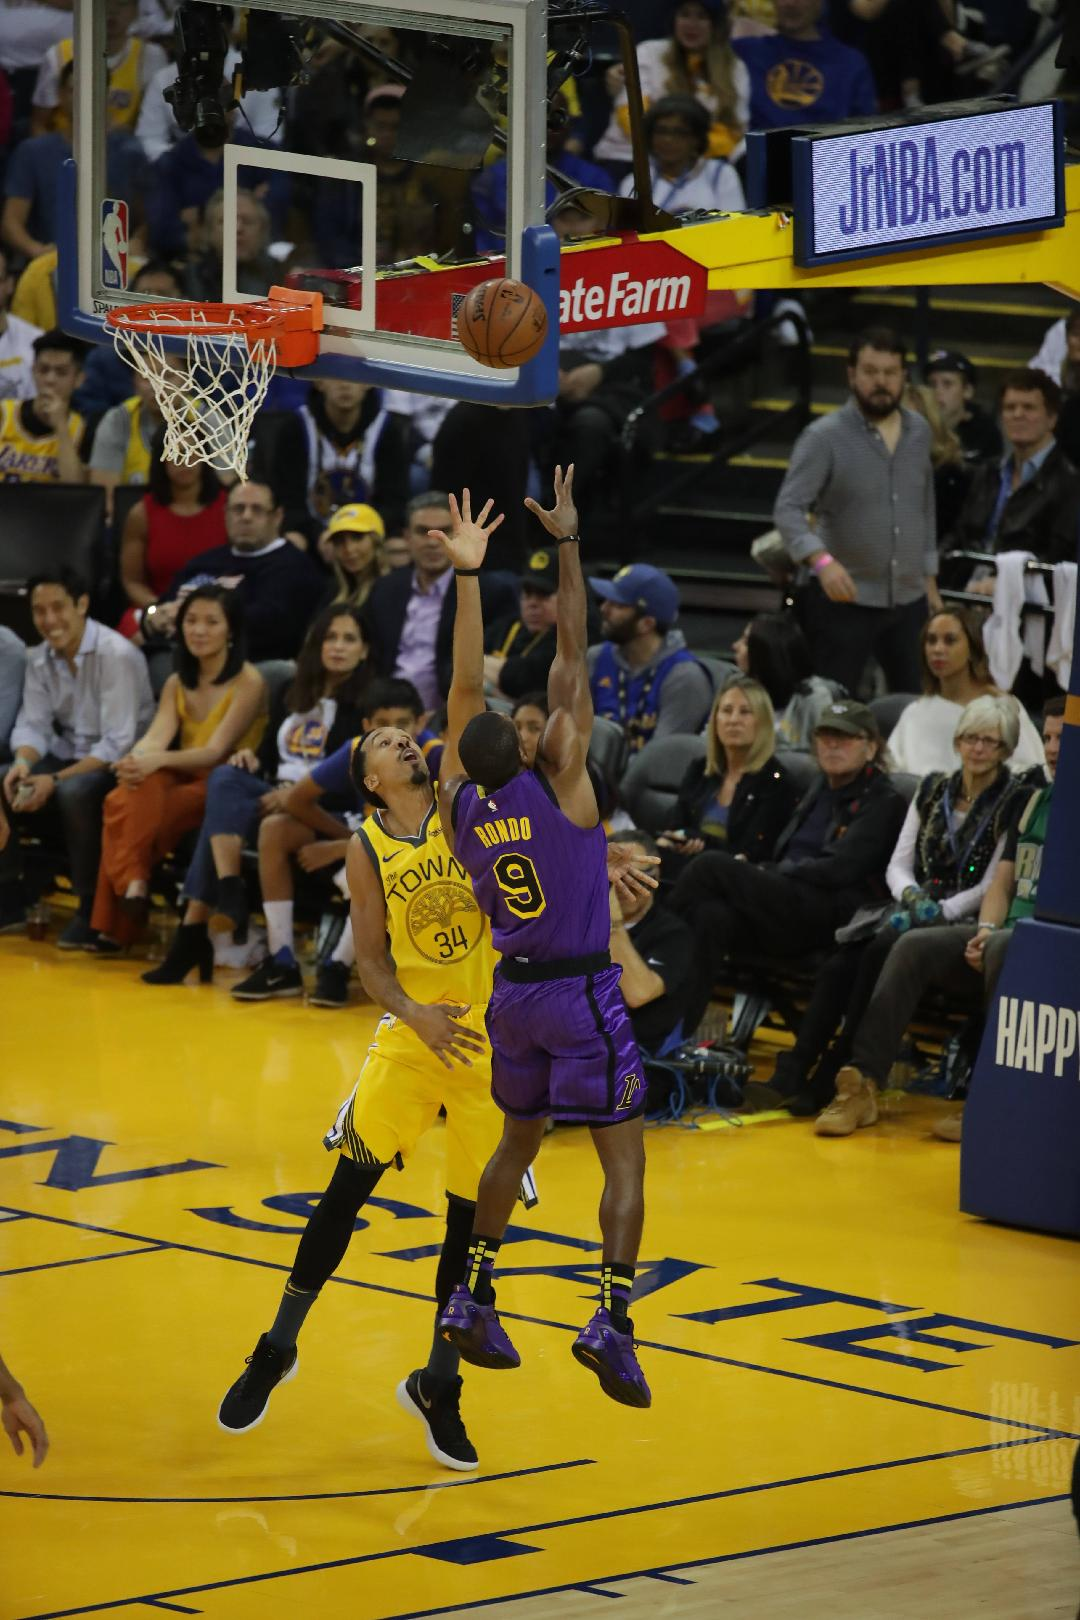 Bad Christmas day for Warriors, lose 127-101 to Lakers ...